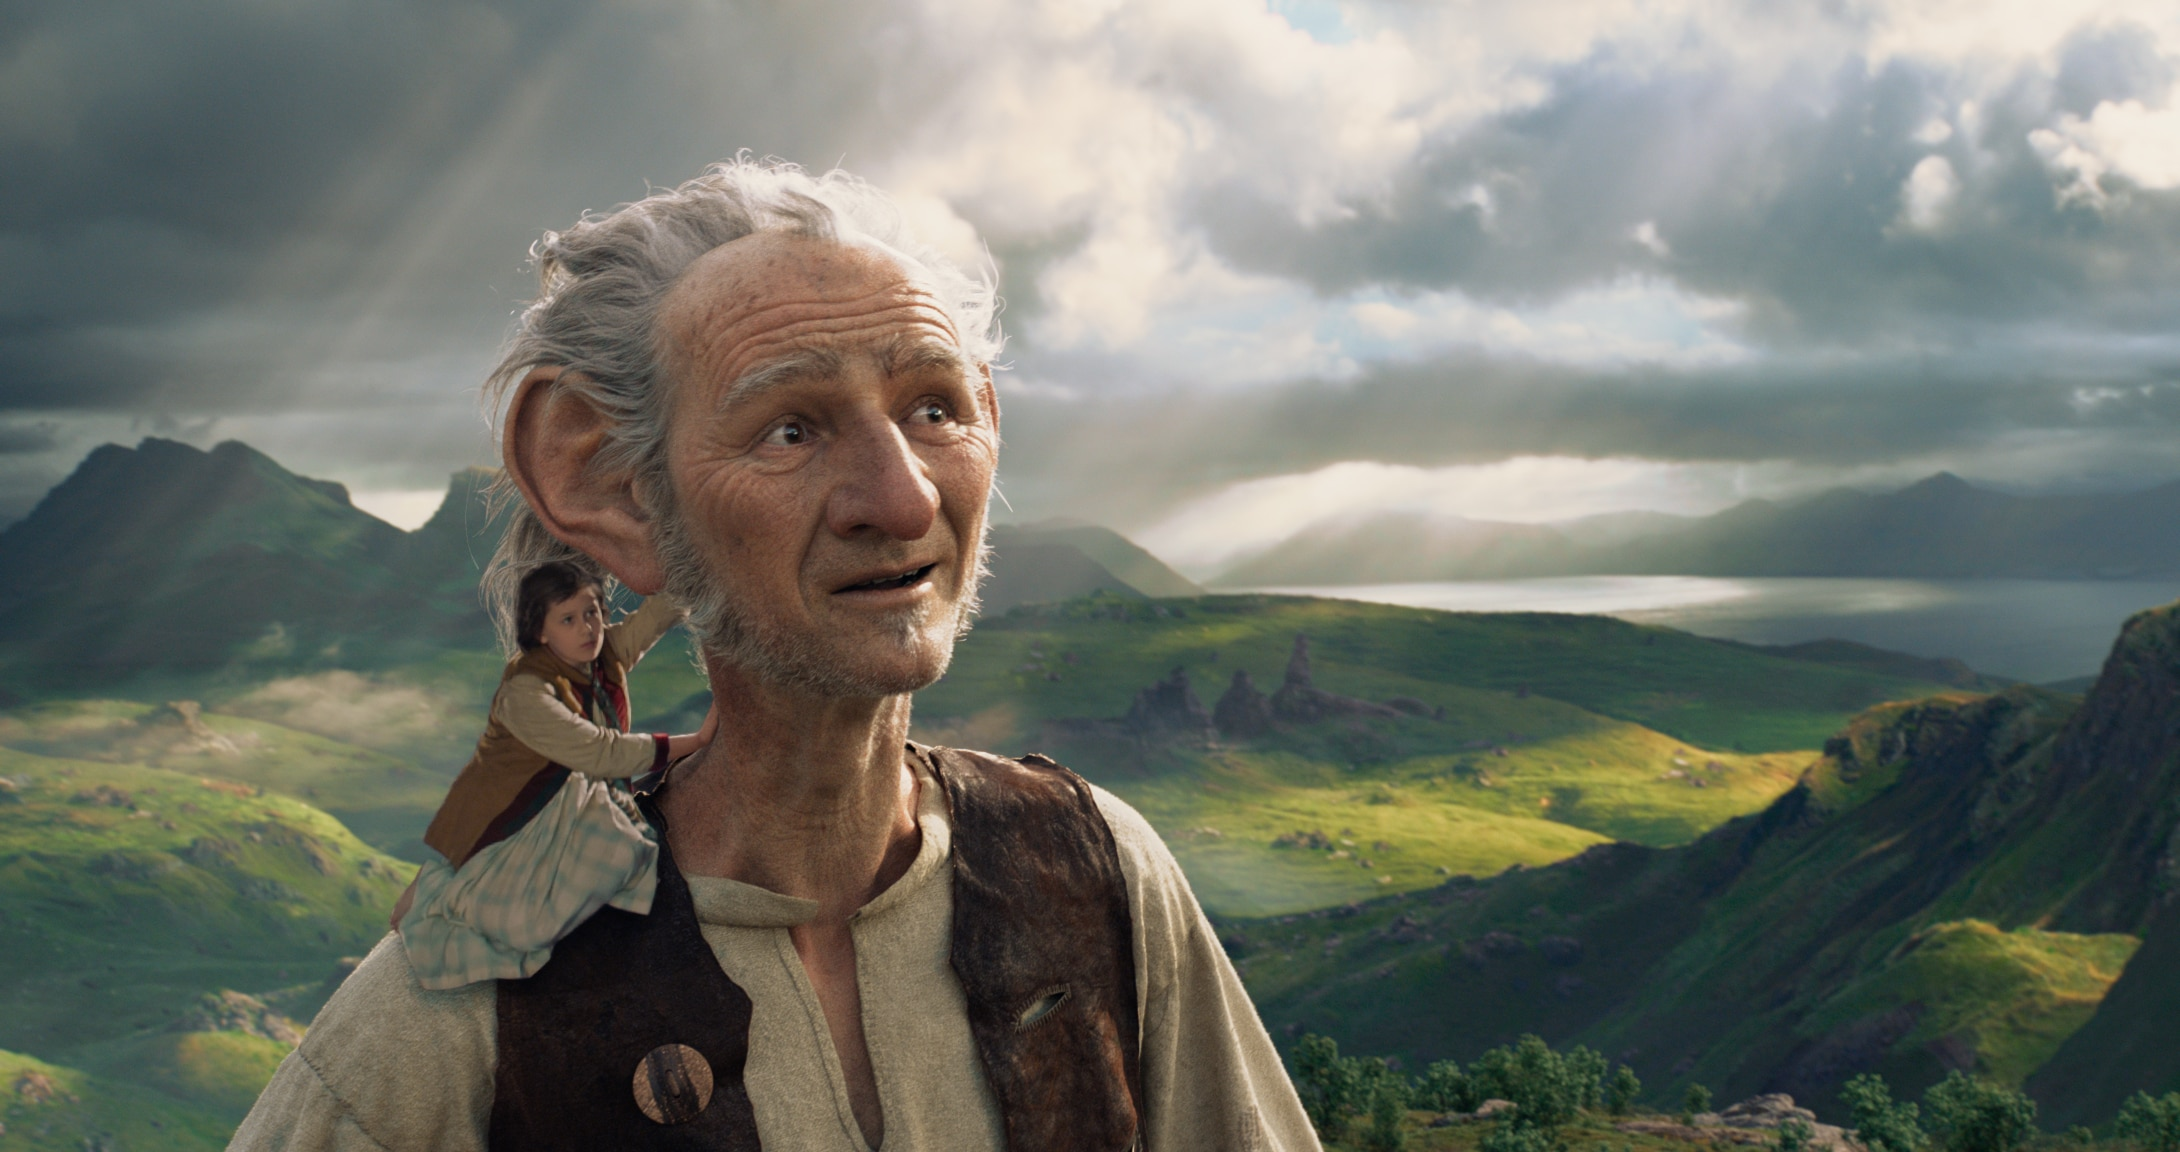 """Ruby Barnhill as Sophie, sitting on the shoulder of The BFG (played by actor Mark Rylance) in the movie """"The BFG"""""""